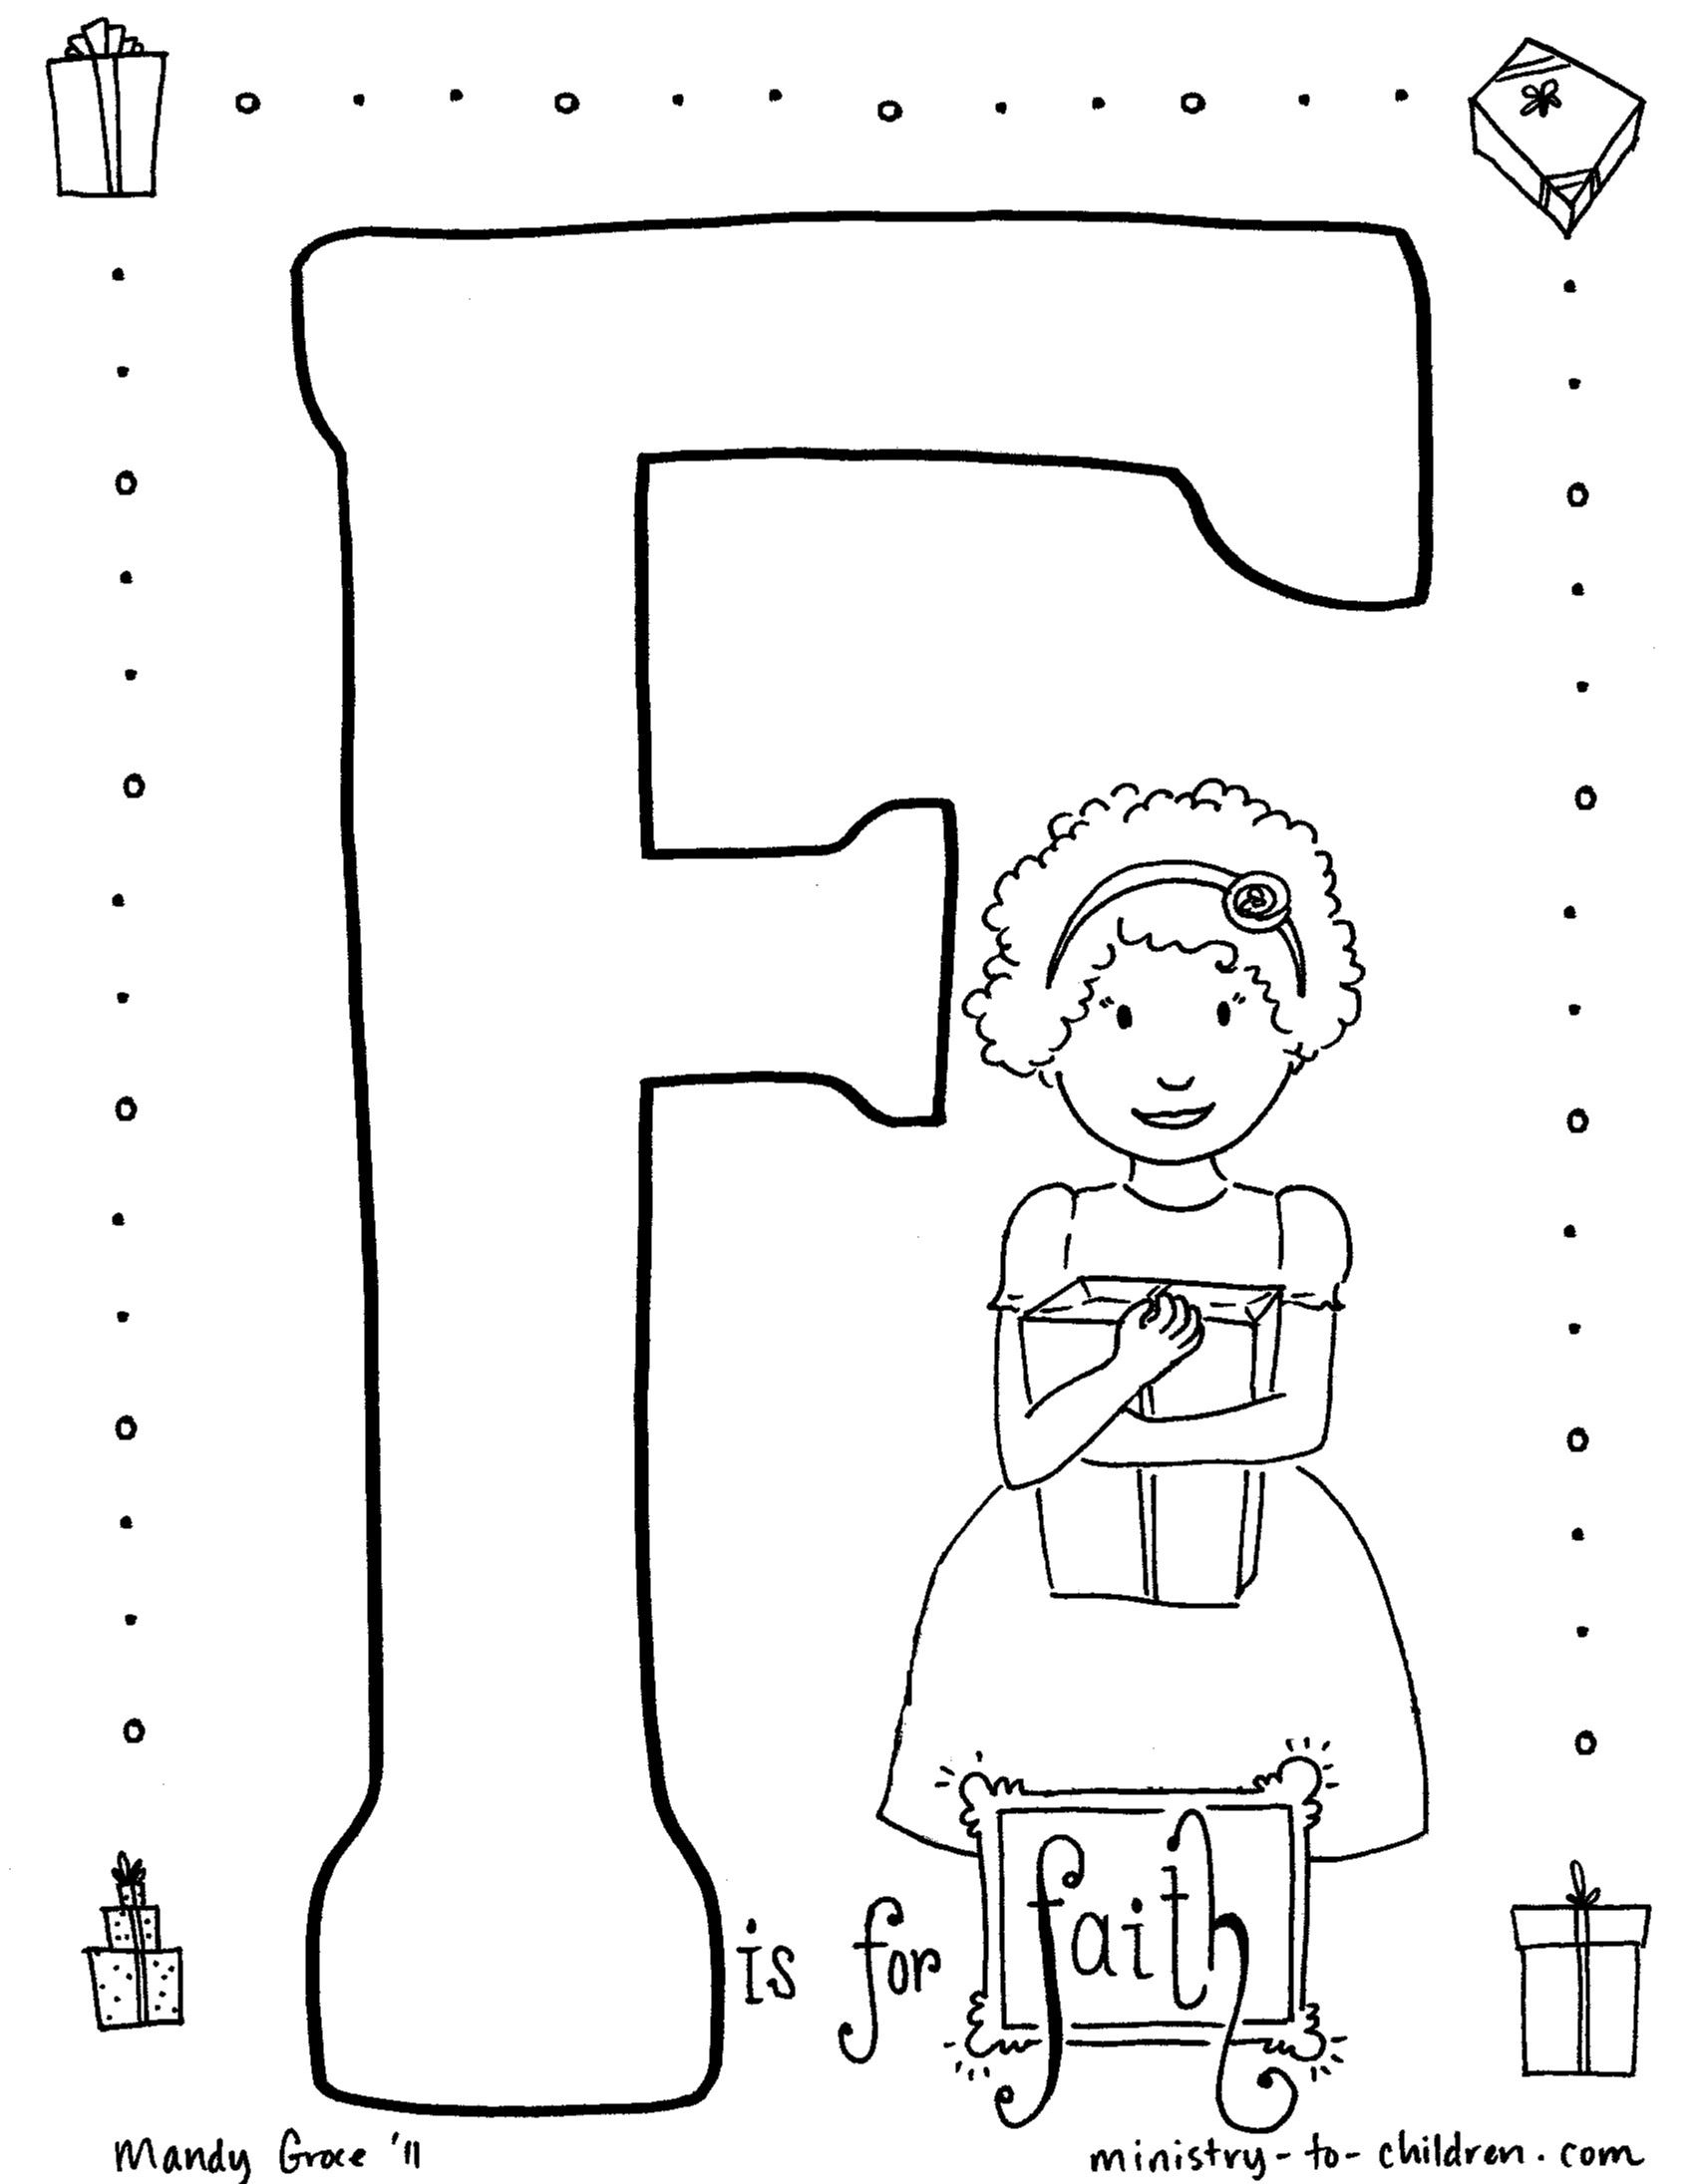 Free christian art coloring page downloads book store pinterest